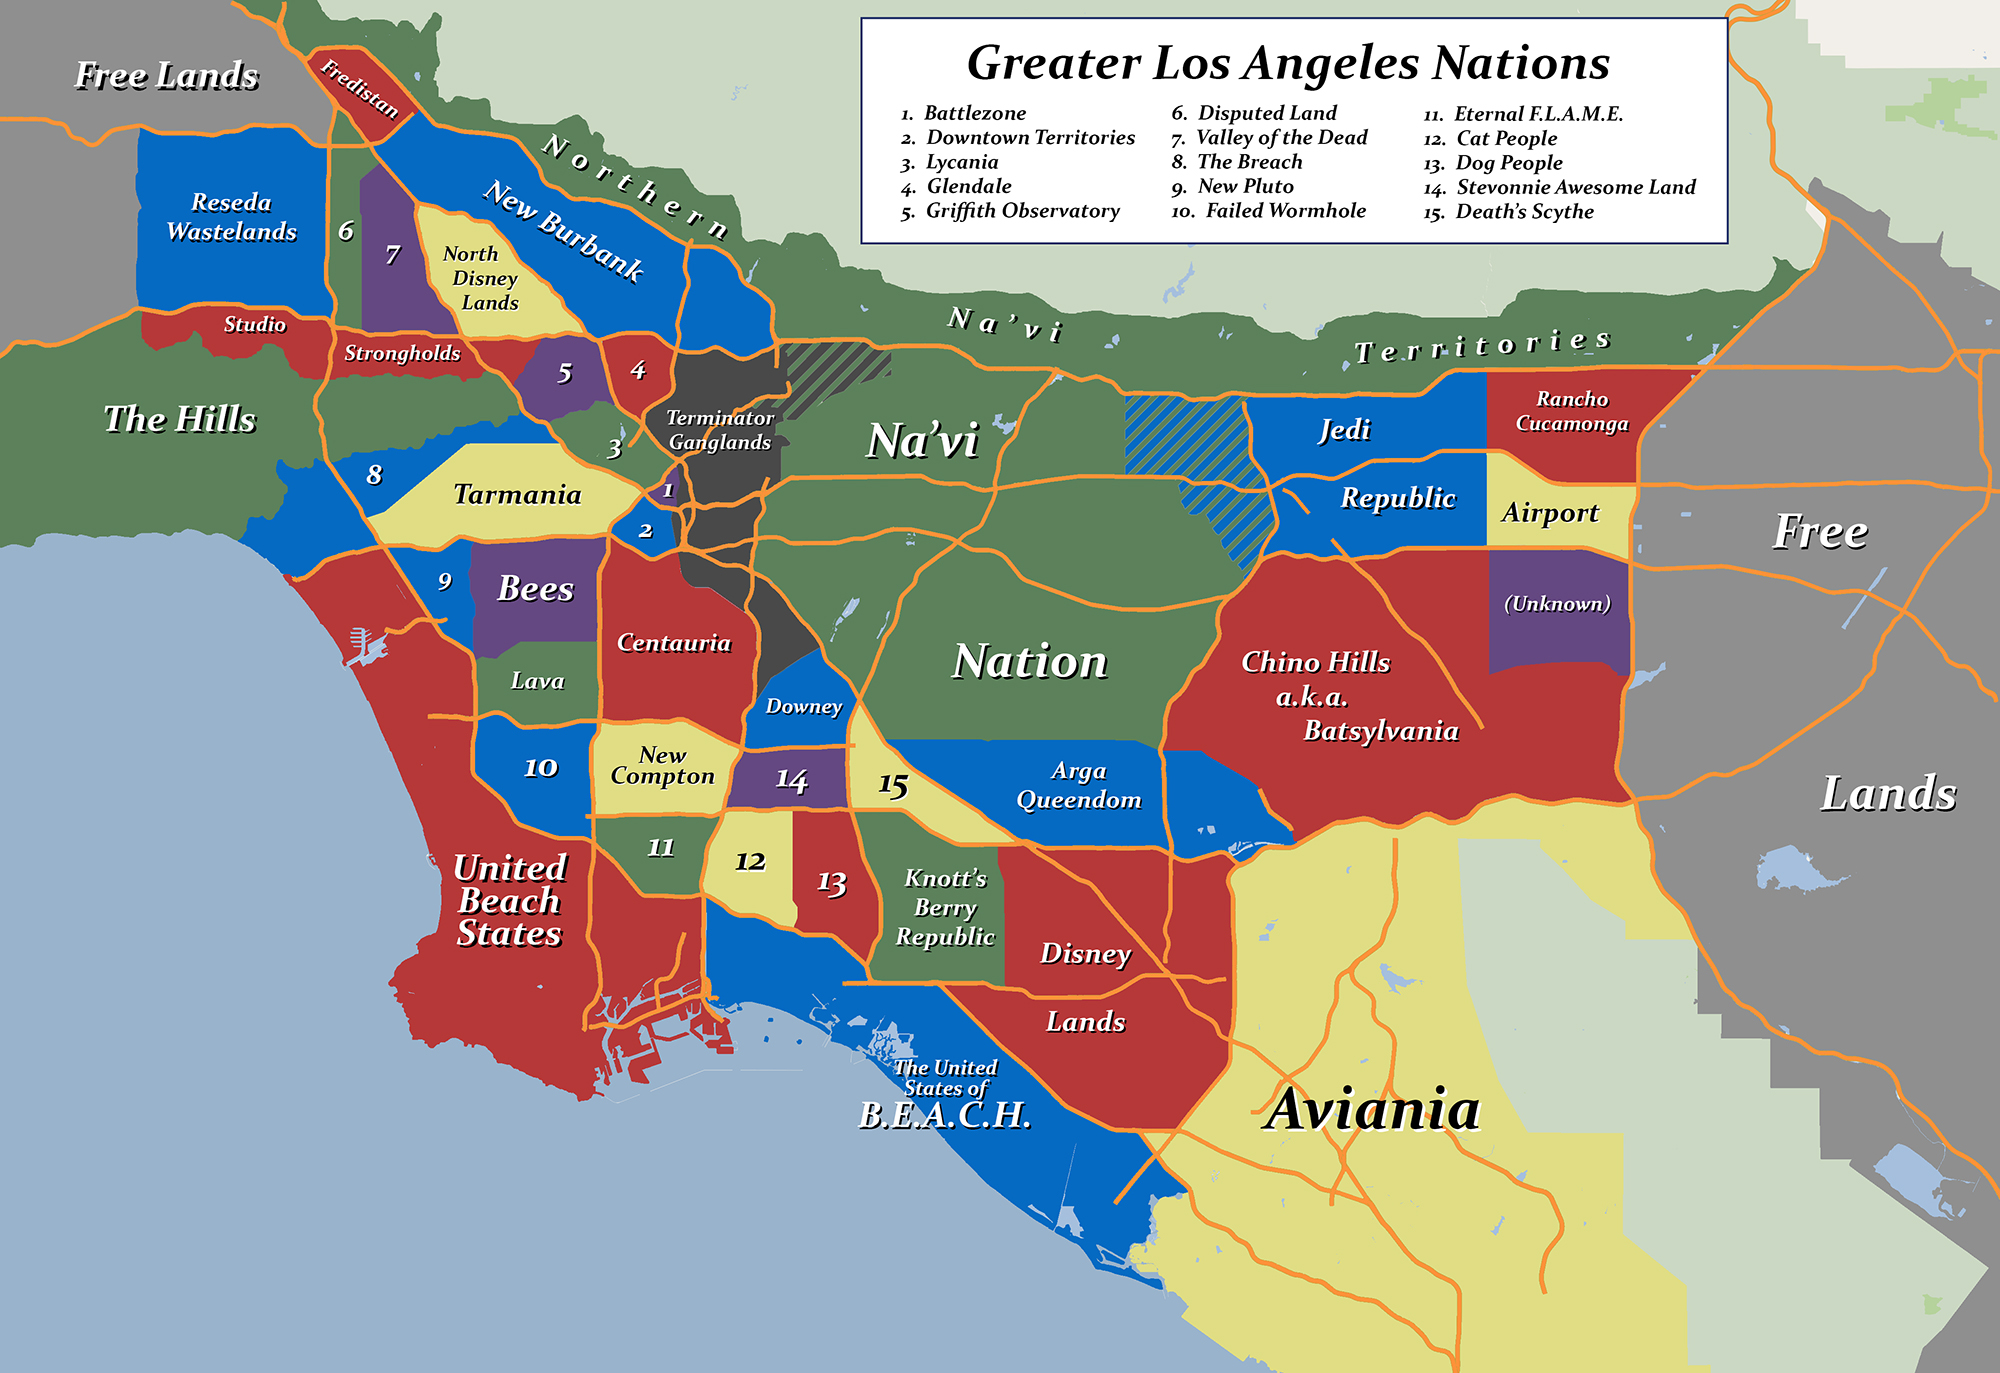 Los Angeles Gangs Map | Travel Guide on gang signal, south central la gang map, chicago street gang map, american gangs map, usa gang map, gang goals, gang injunction copy of court, portland gang map, gta gang attack map, gang injunctions in los angeles, gang maps of washington, la street gangs map, gang graffiti, gang statistics, los angeles gang map, miami gang map, google la gang map, oakland gang map, watts gang map, toledo gang map,